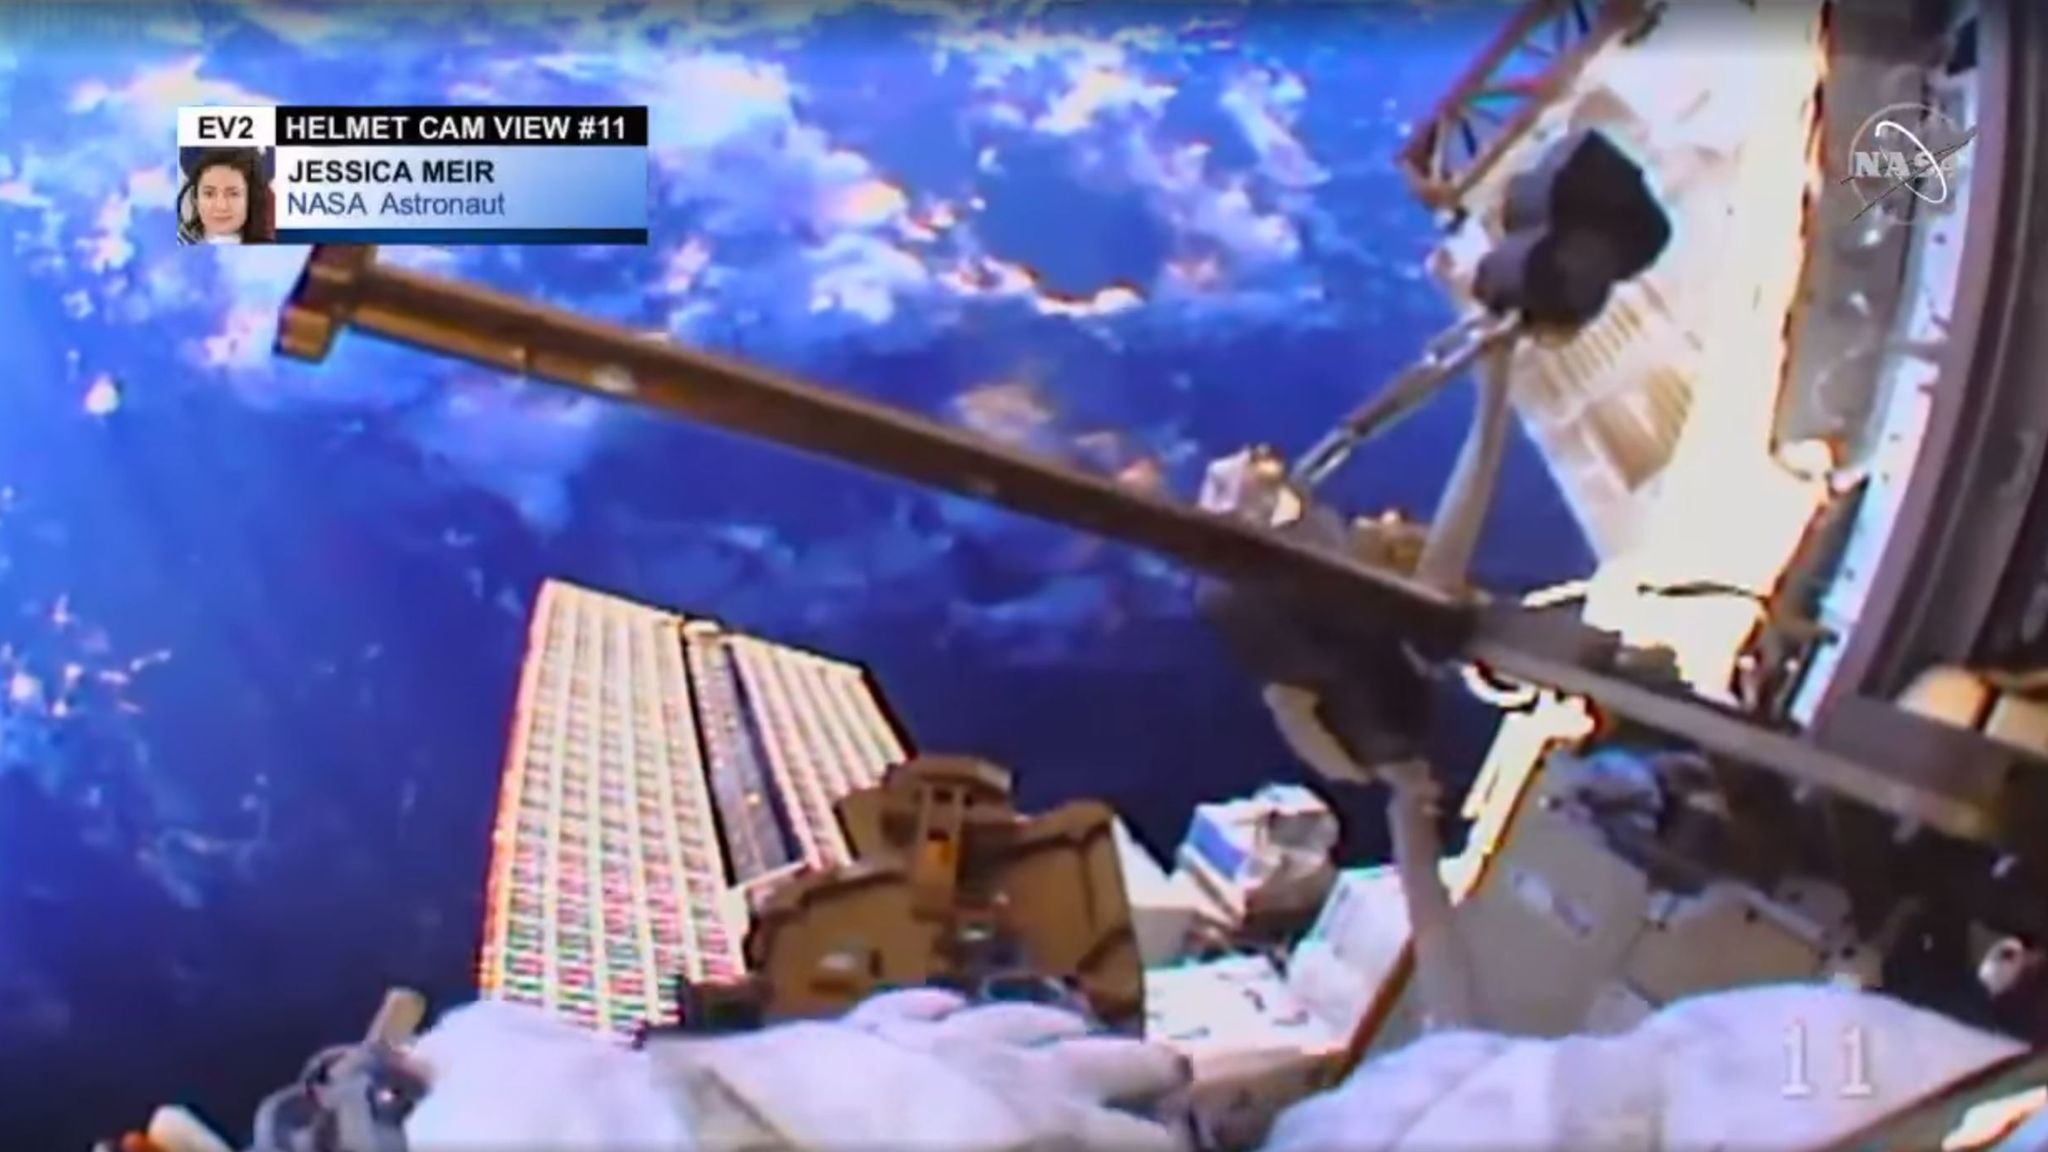 Helmet-cam footage shows Earth during first all-female spacewalk